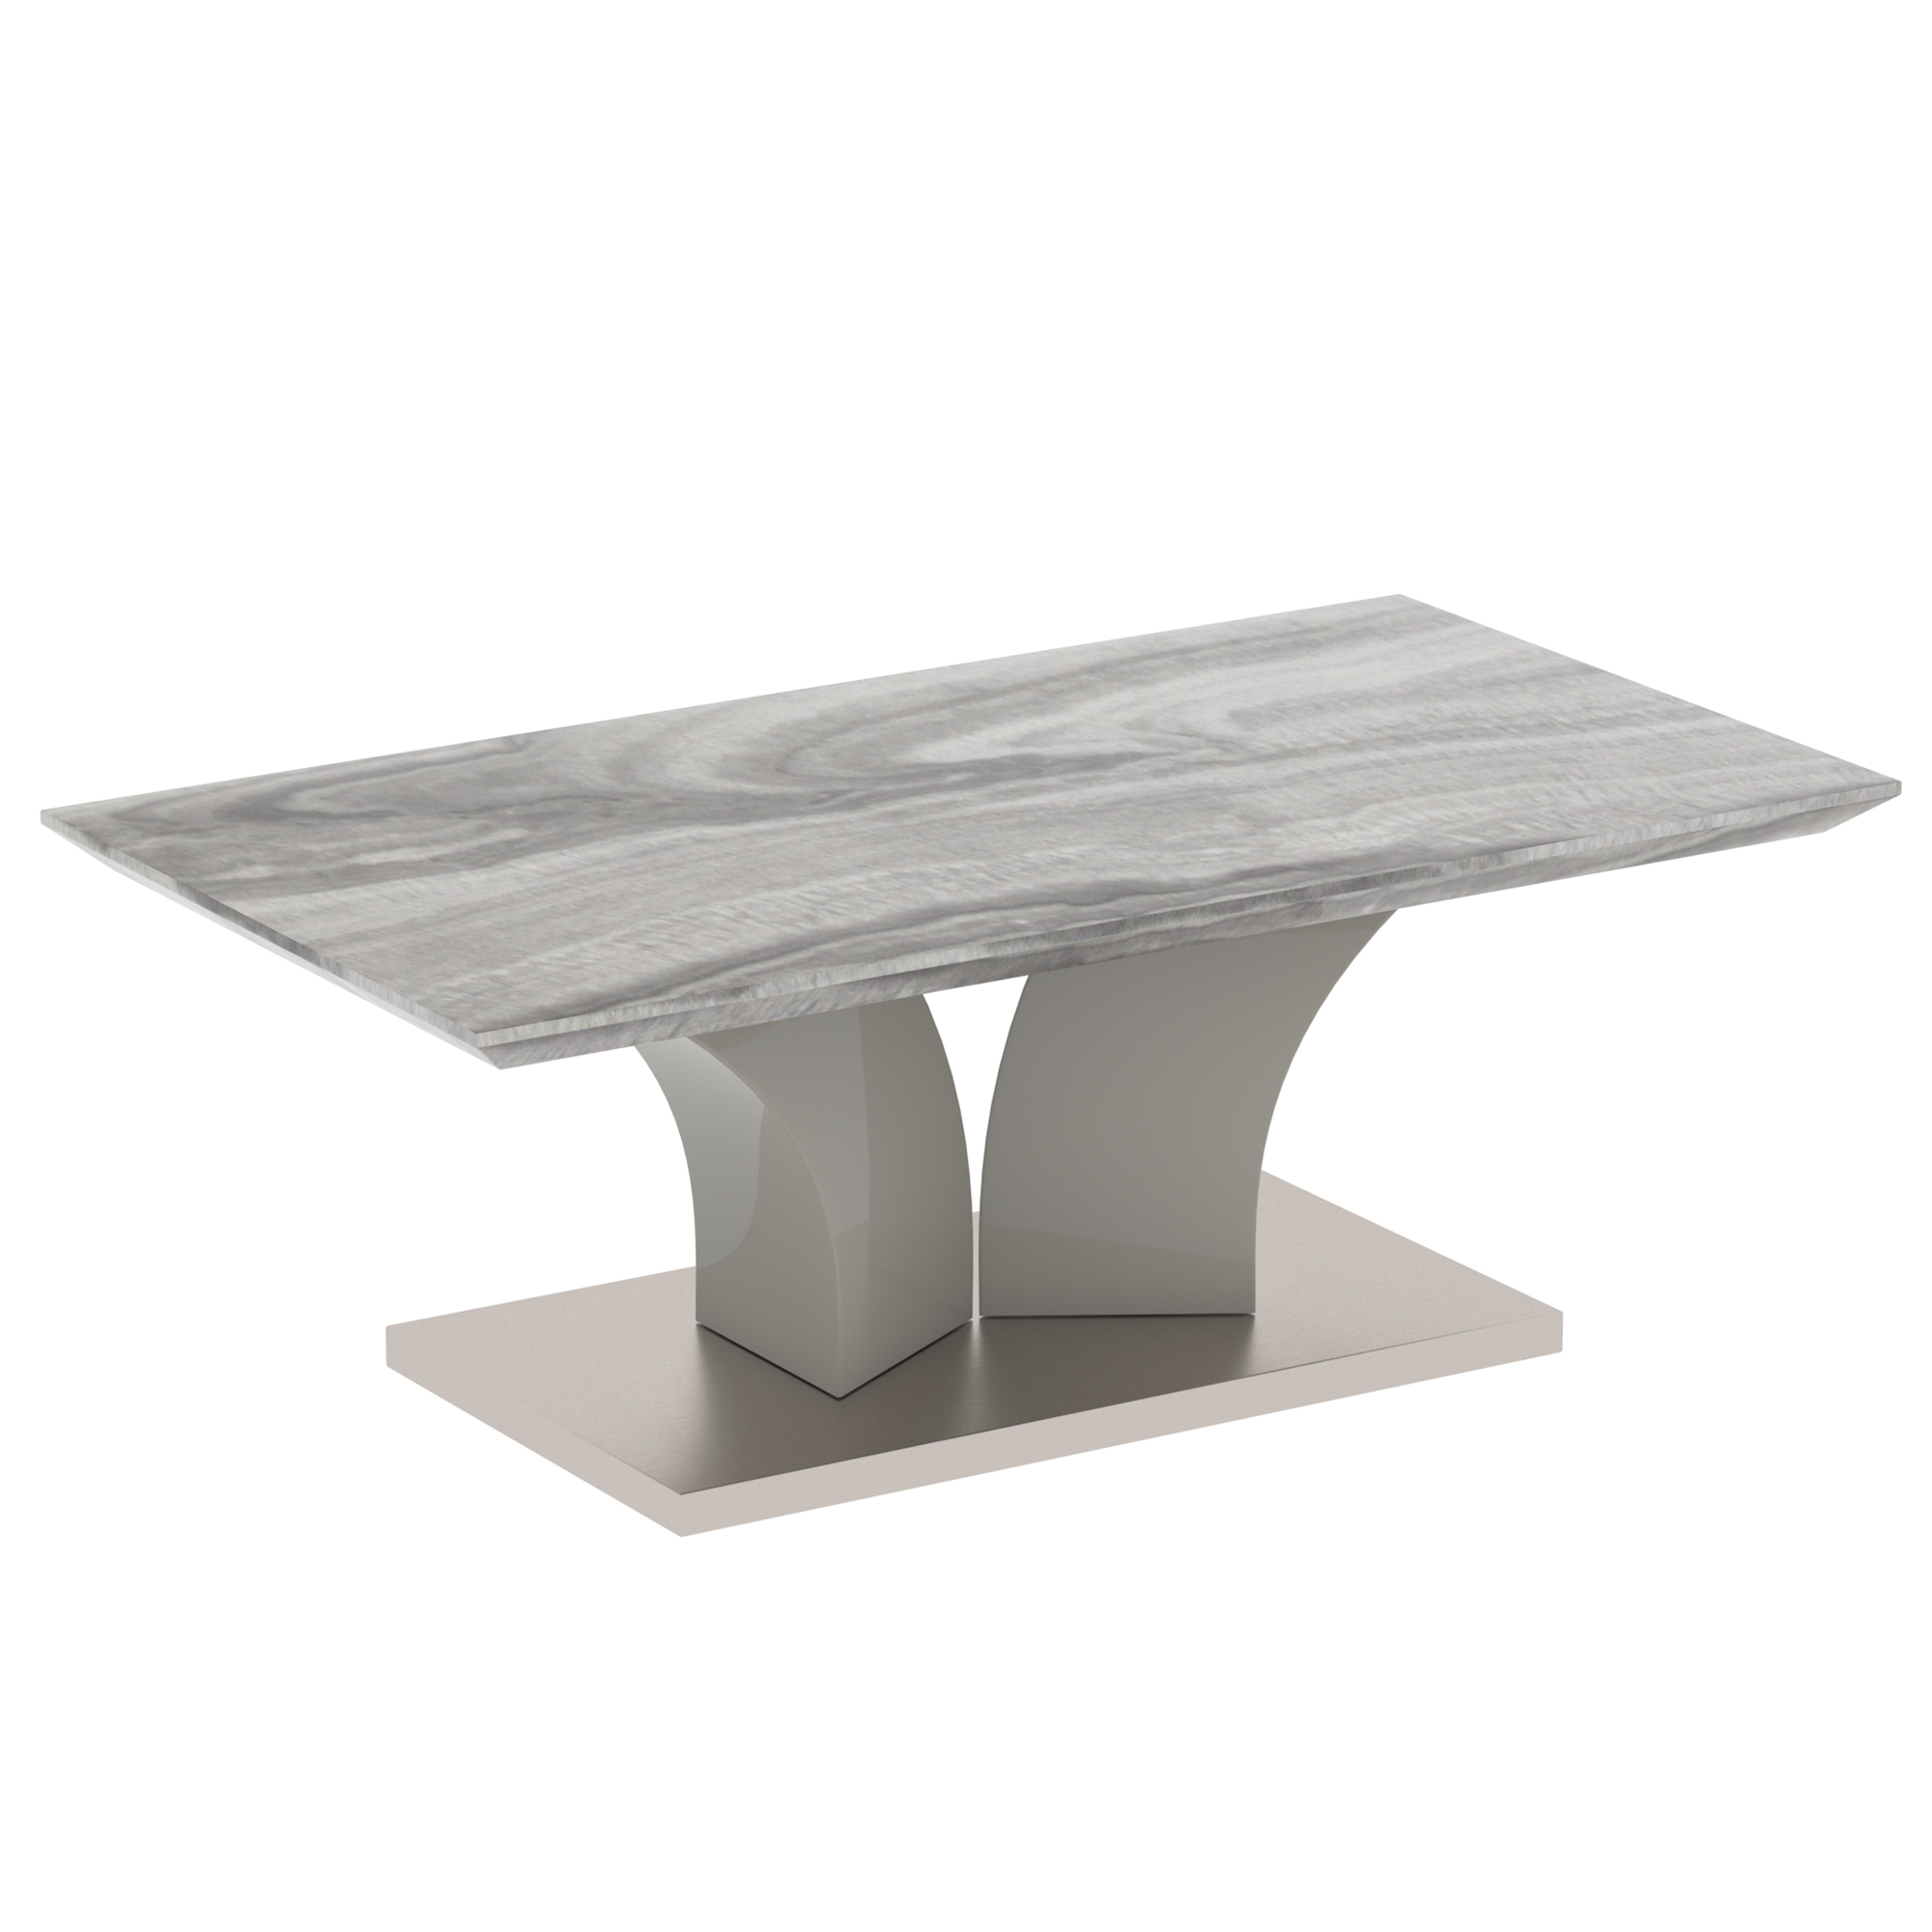 Contemporary Faux Marble & Stainless Steel Coffee Table in Grey